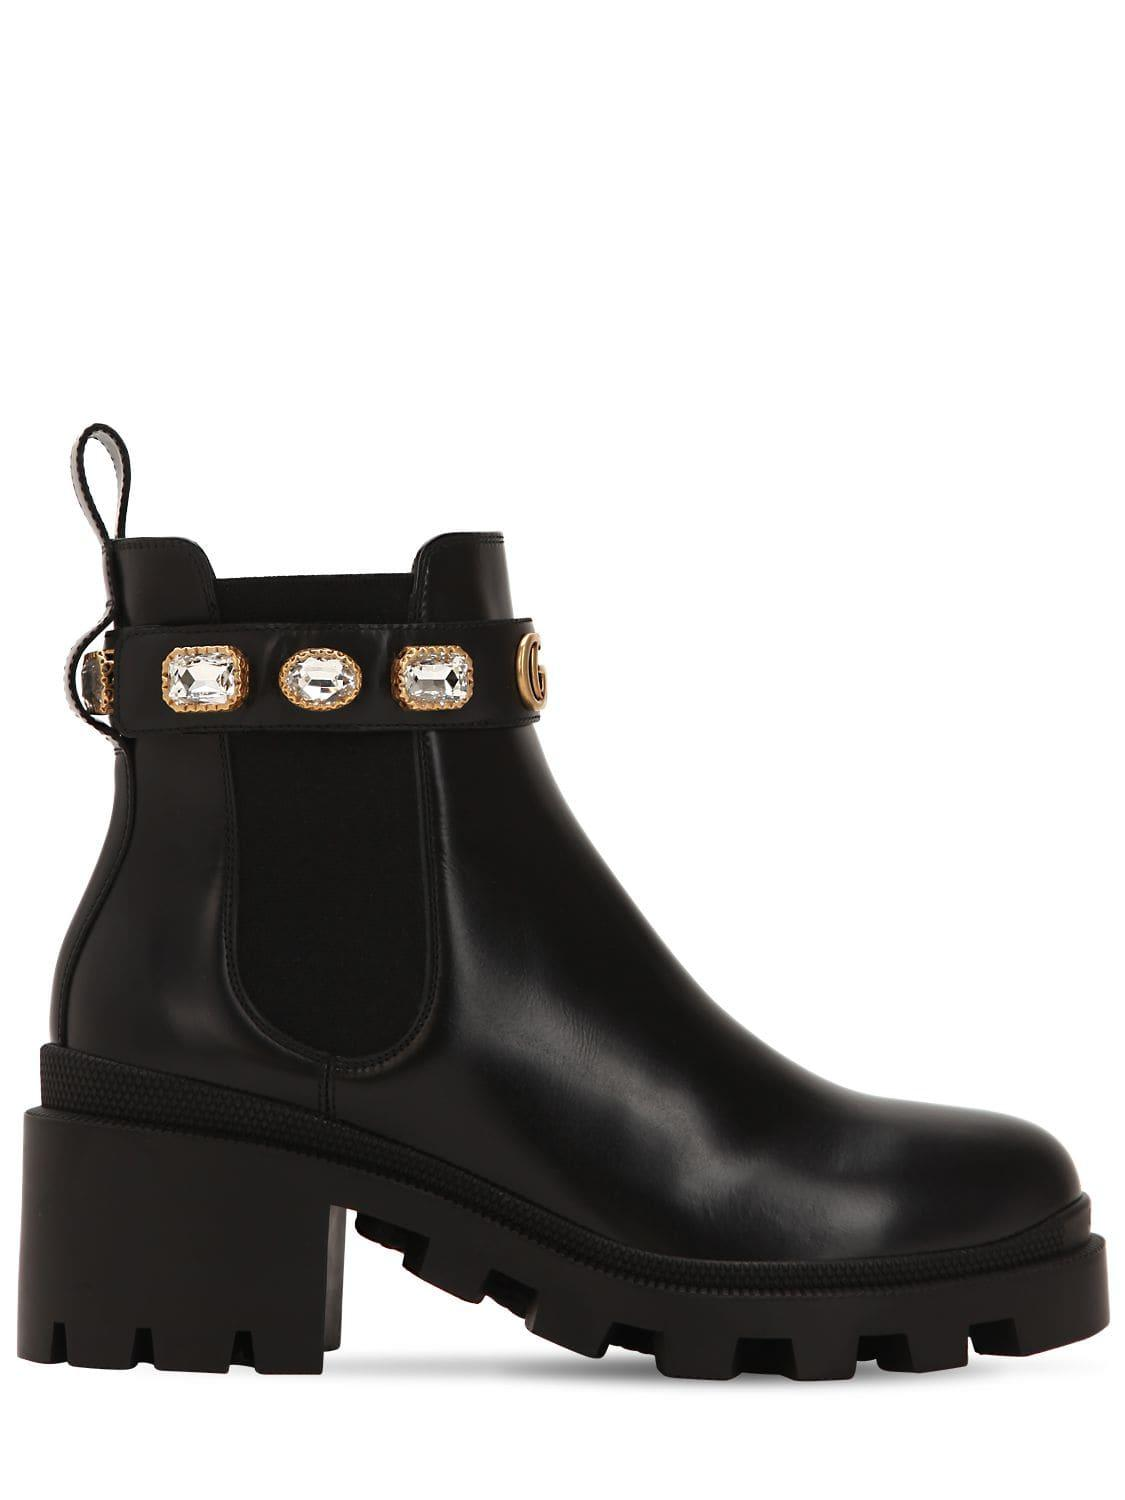 6f3371926 Gucci Black Leather Ankle Boot With Belt. View fullscreen